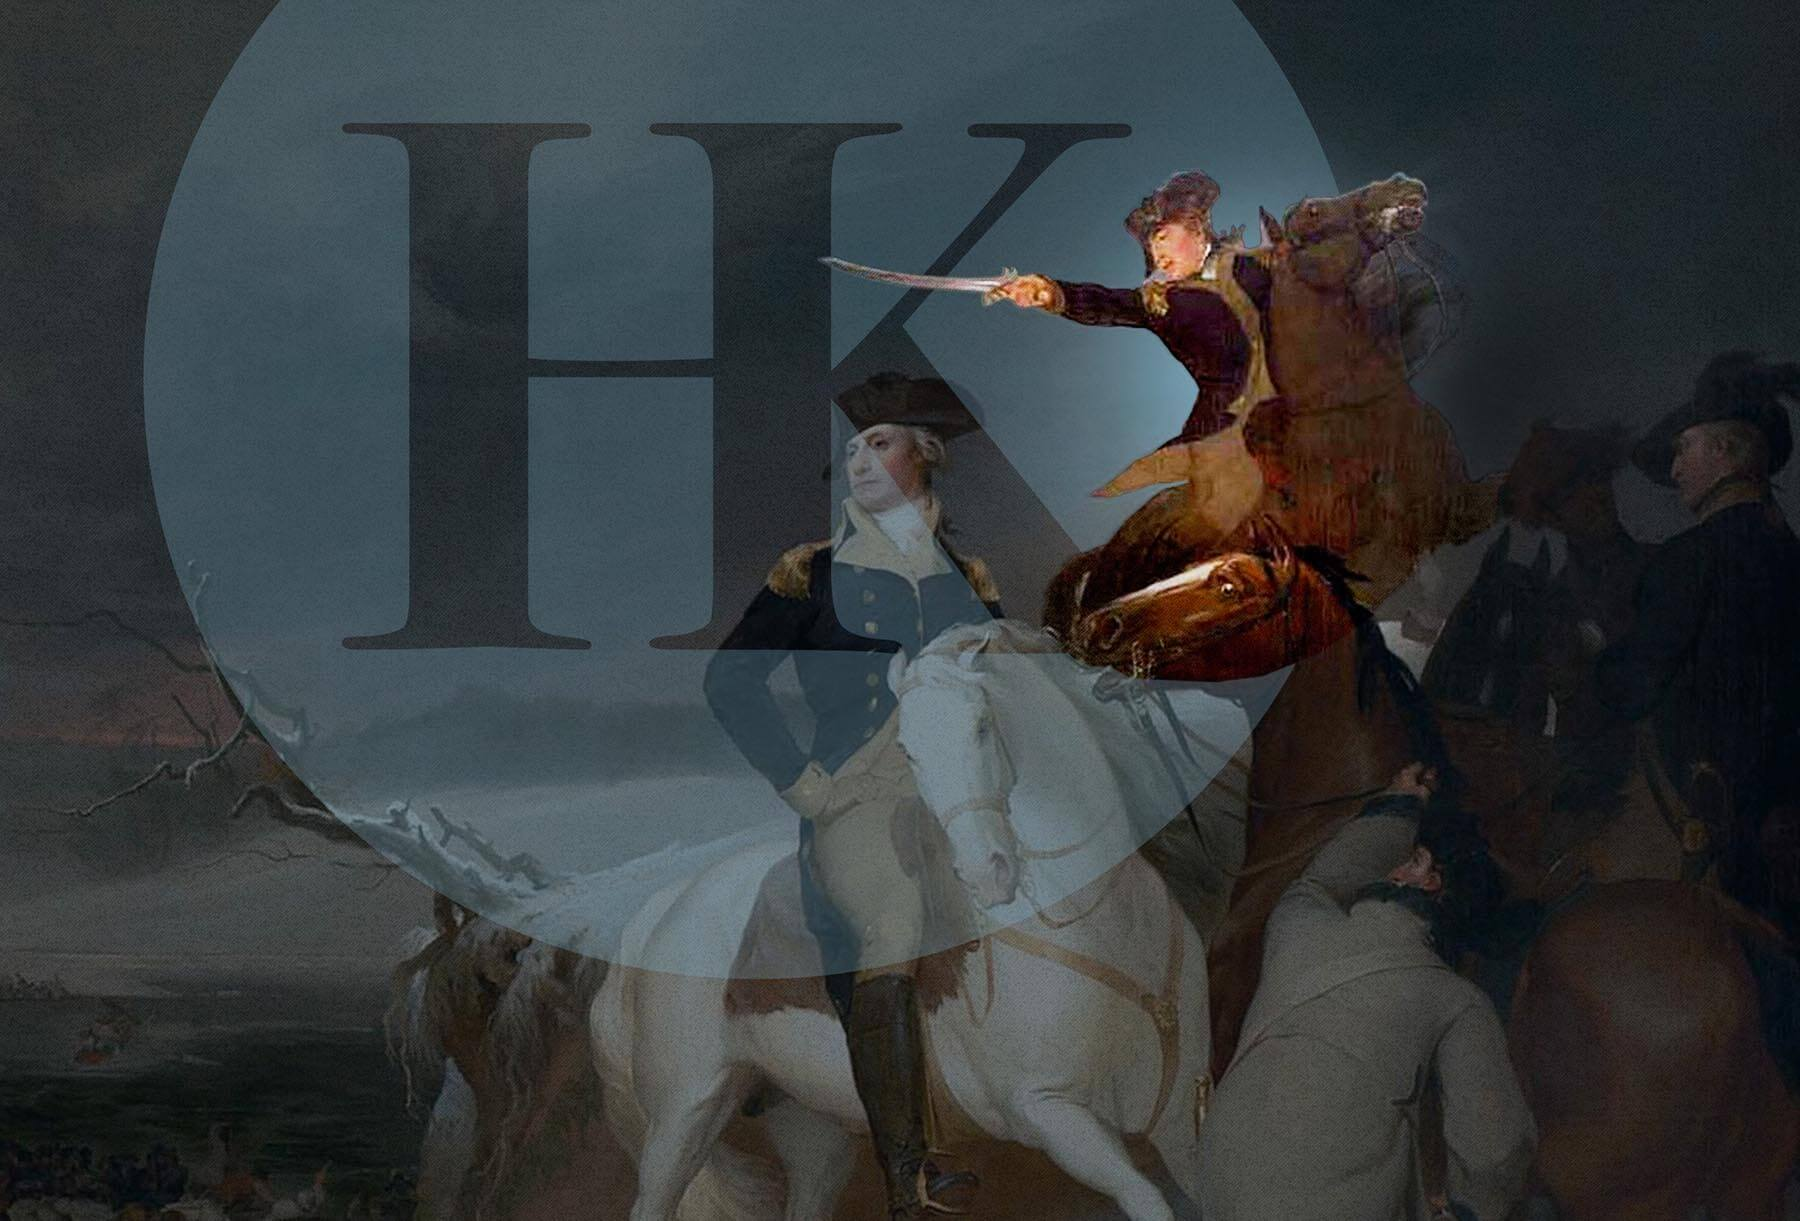 View picture of general henry knox museum montpelier thomaston - Welcome To Knox Museum